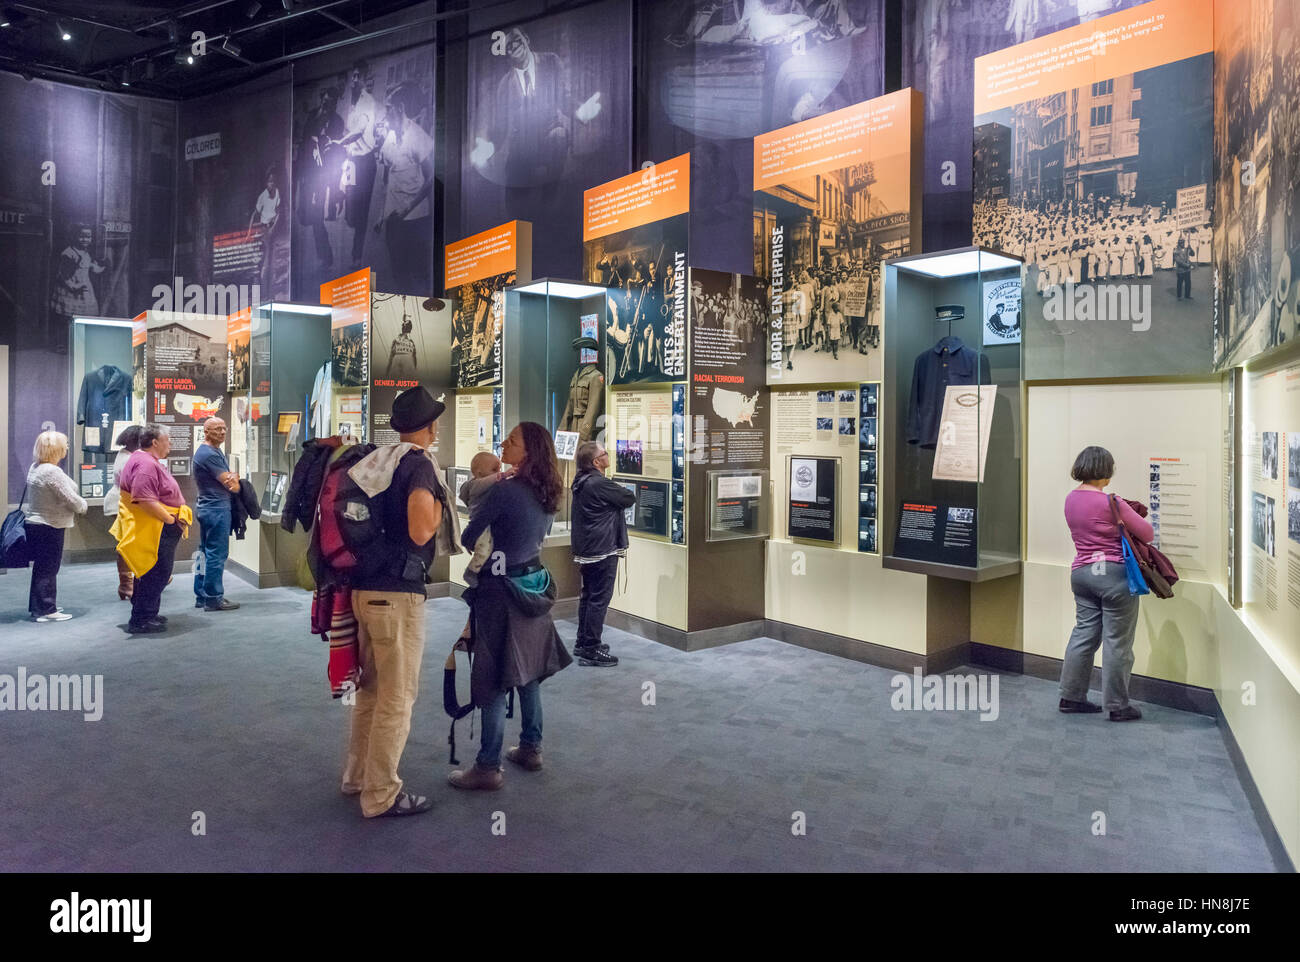 Display in the National Civil Rights Museum, Memphis,Tennessee, USA - Stock Image